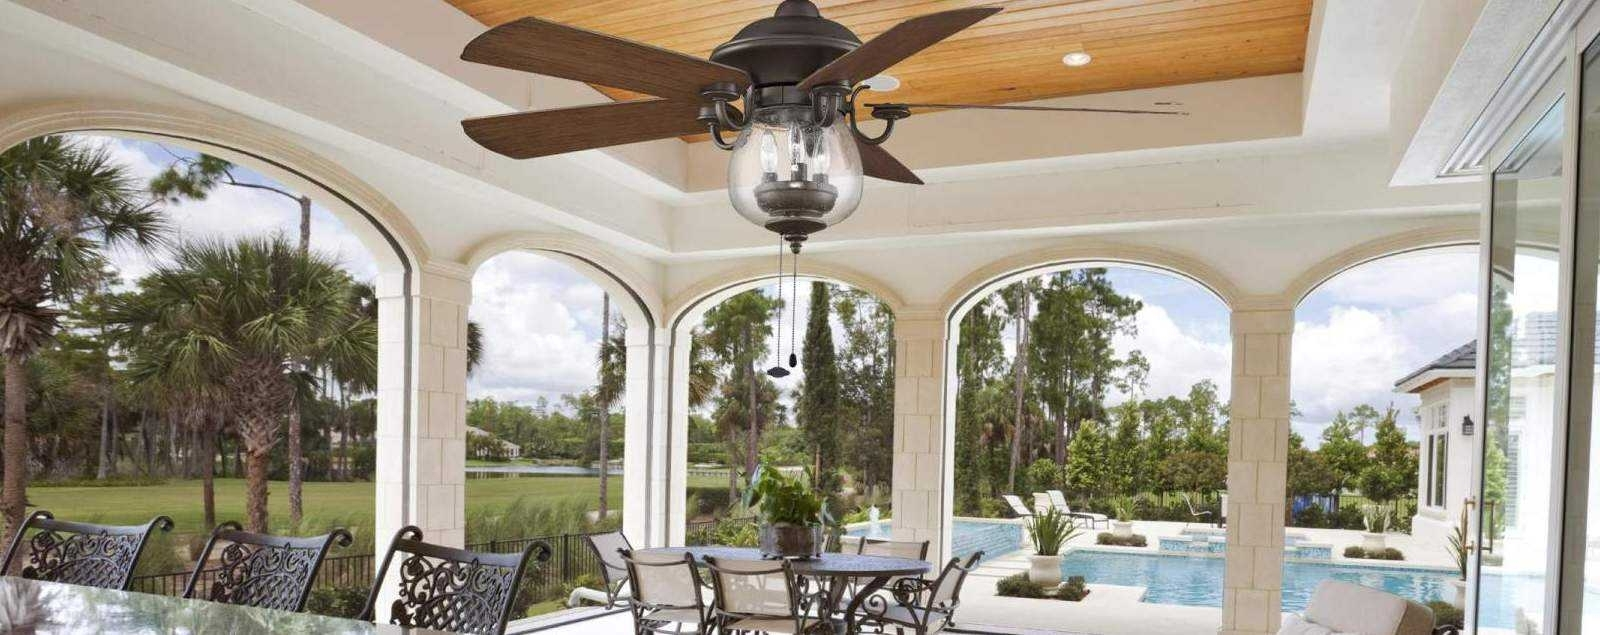 2019 Outdoor Ceiling Fans For Porch Intended For Outdoor Ceiling Fans Hansen Ideas With Incredible Exterior For (View 2 of 20)